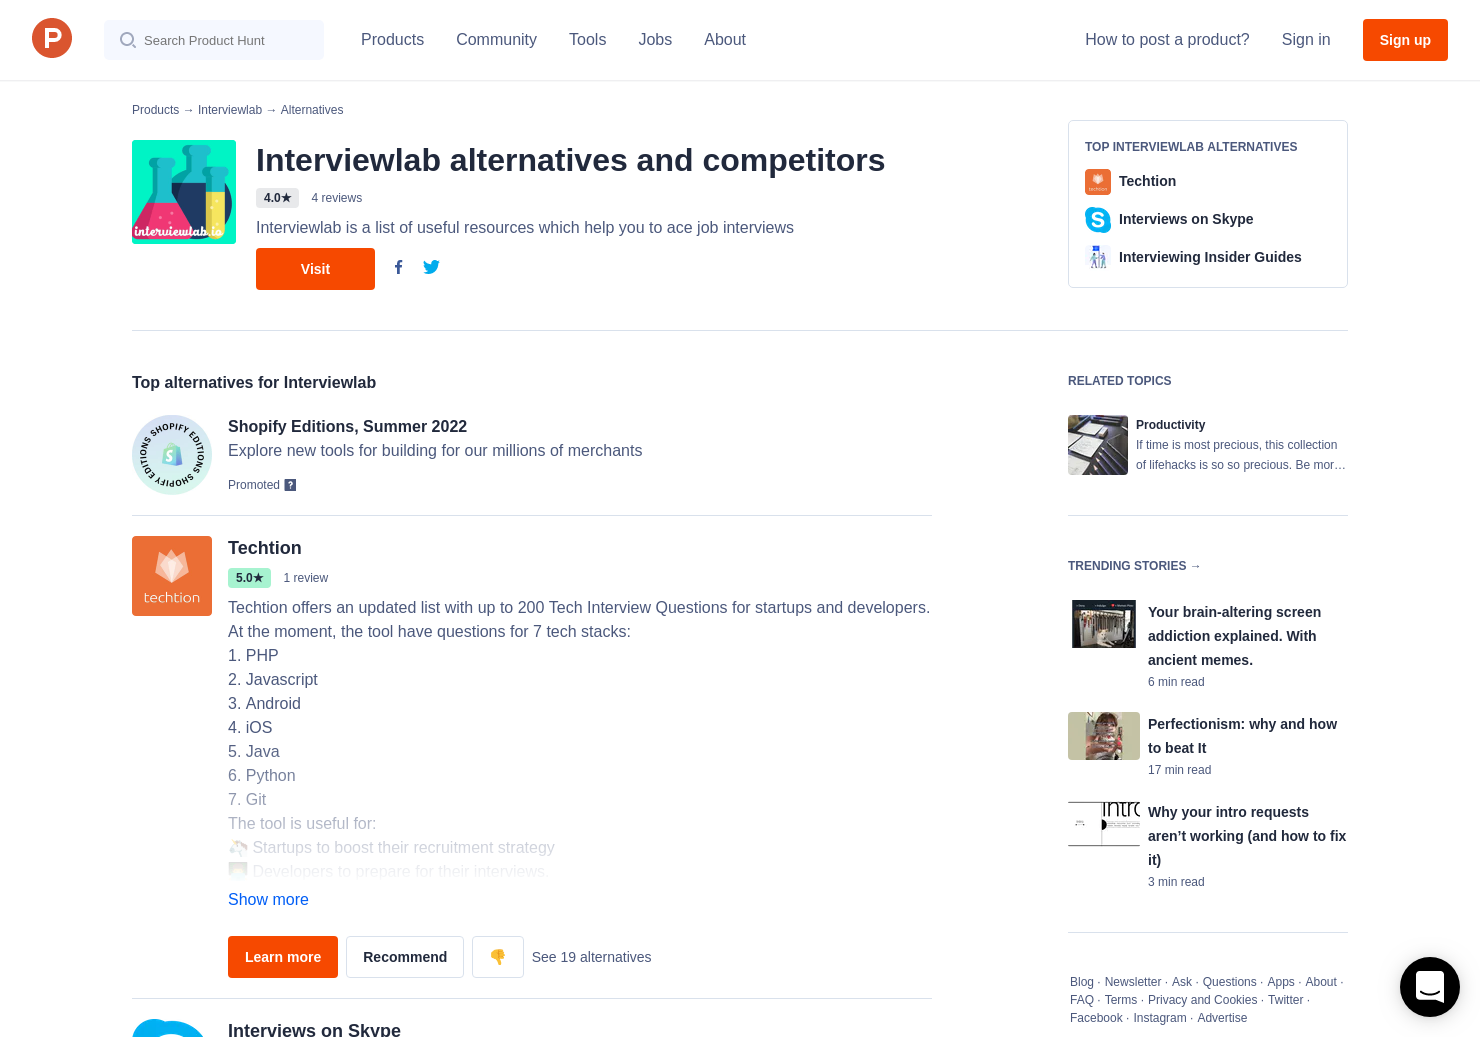 19 Alternatives to Interviewlab | Product Hunt